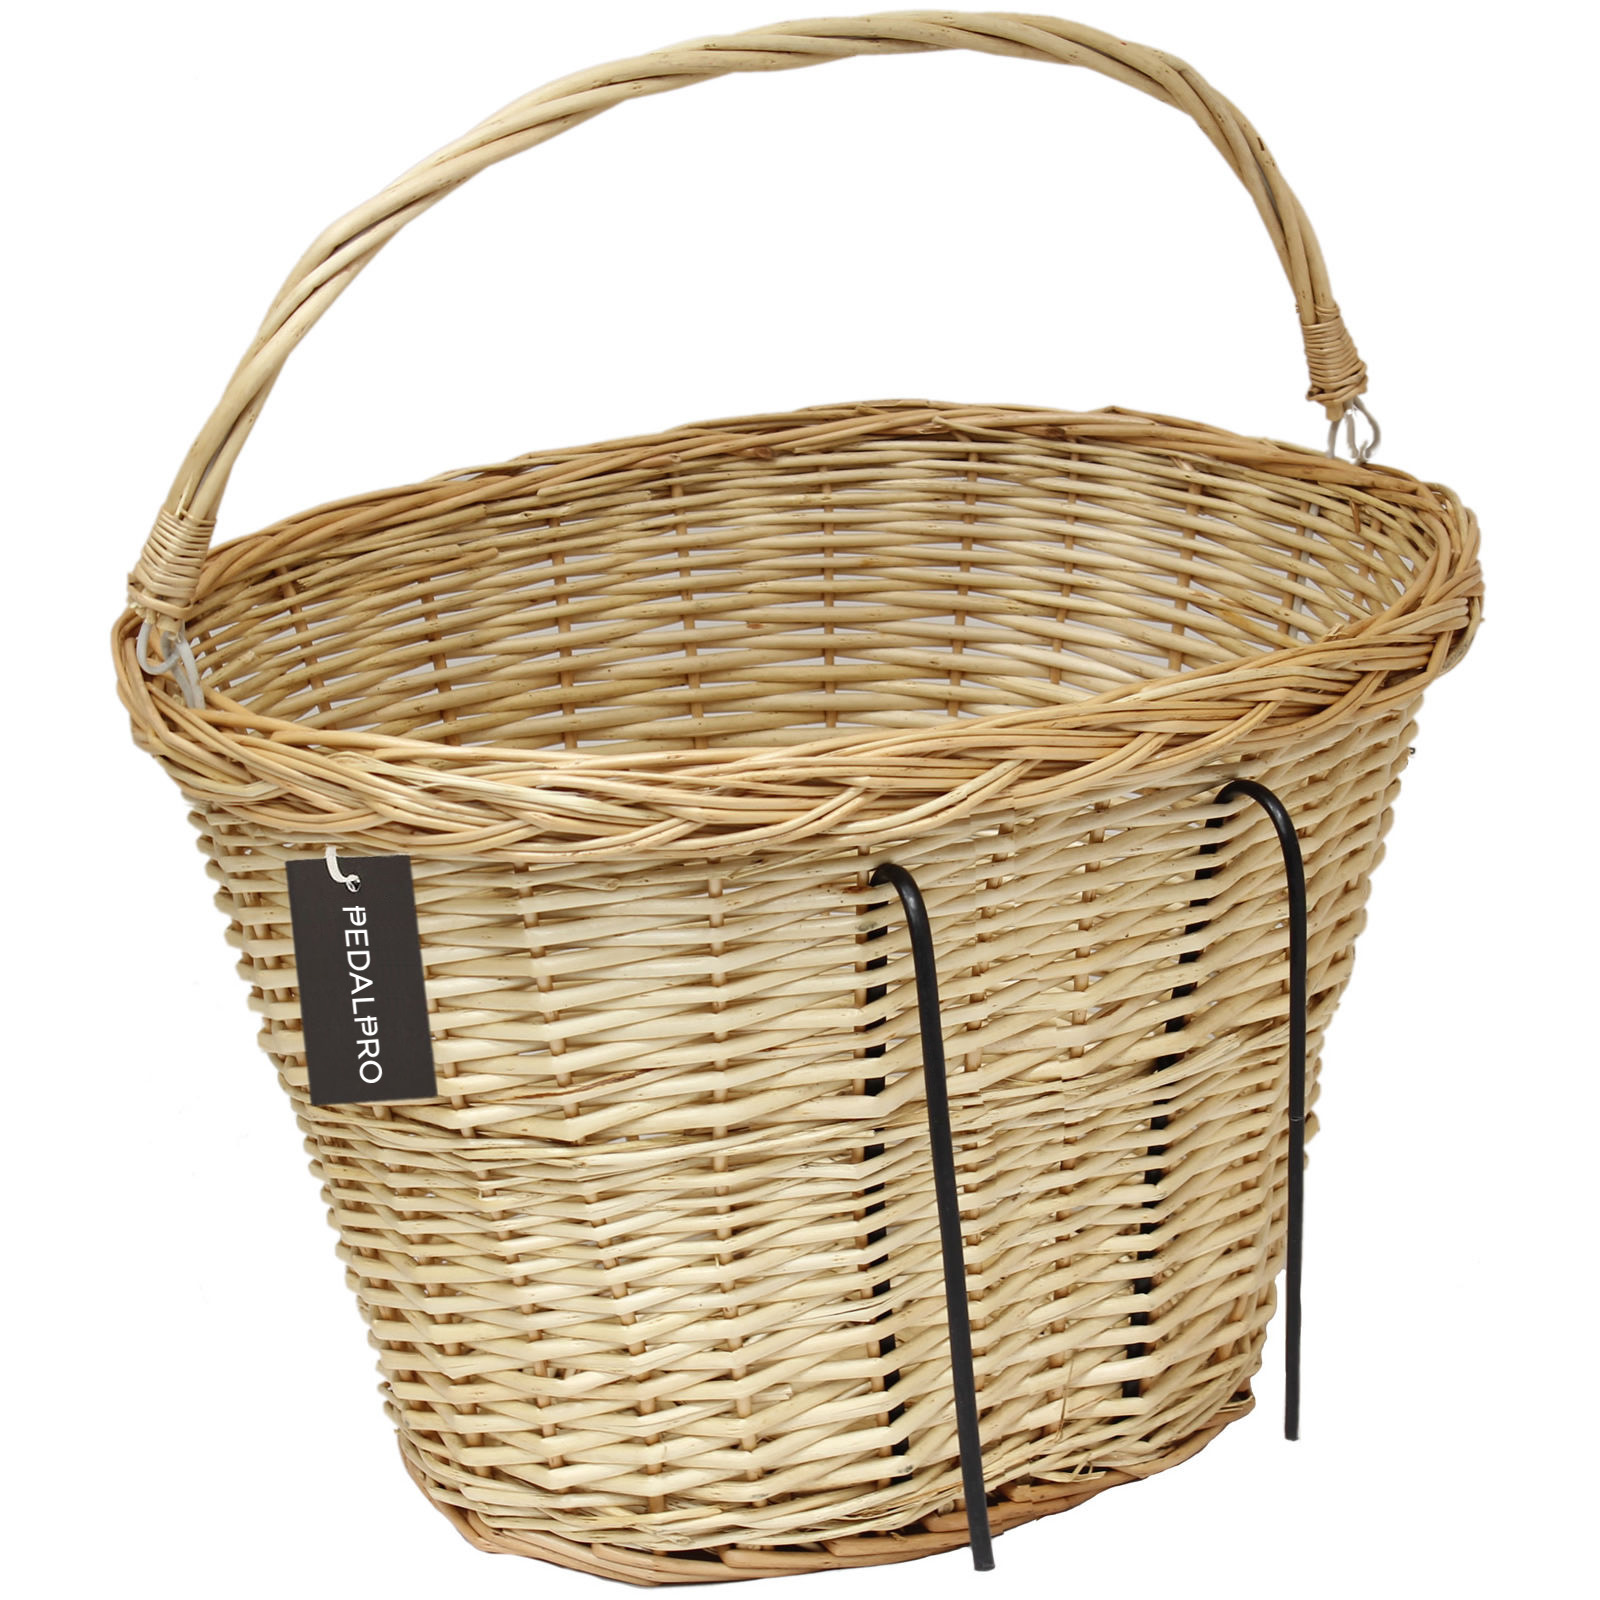 Wicker Bike Basket With Handle : Bicycle wicker ping basket with carry handle for front